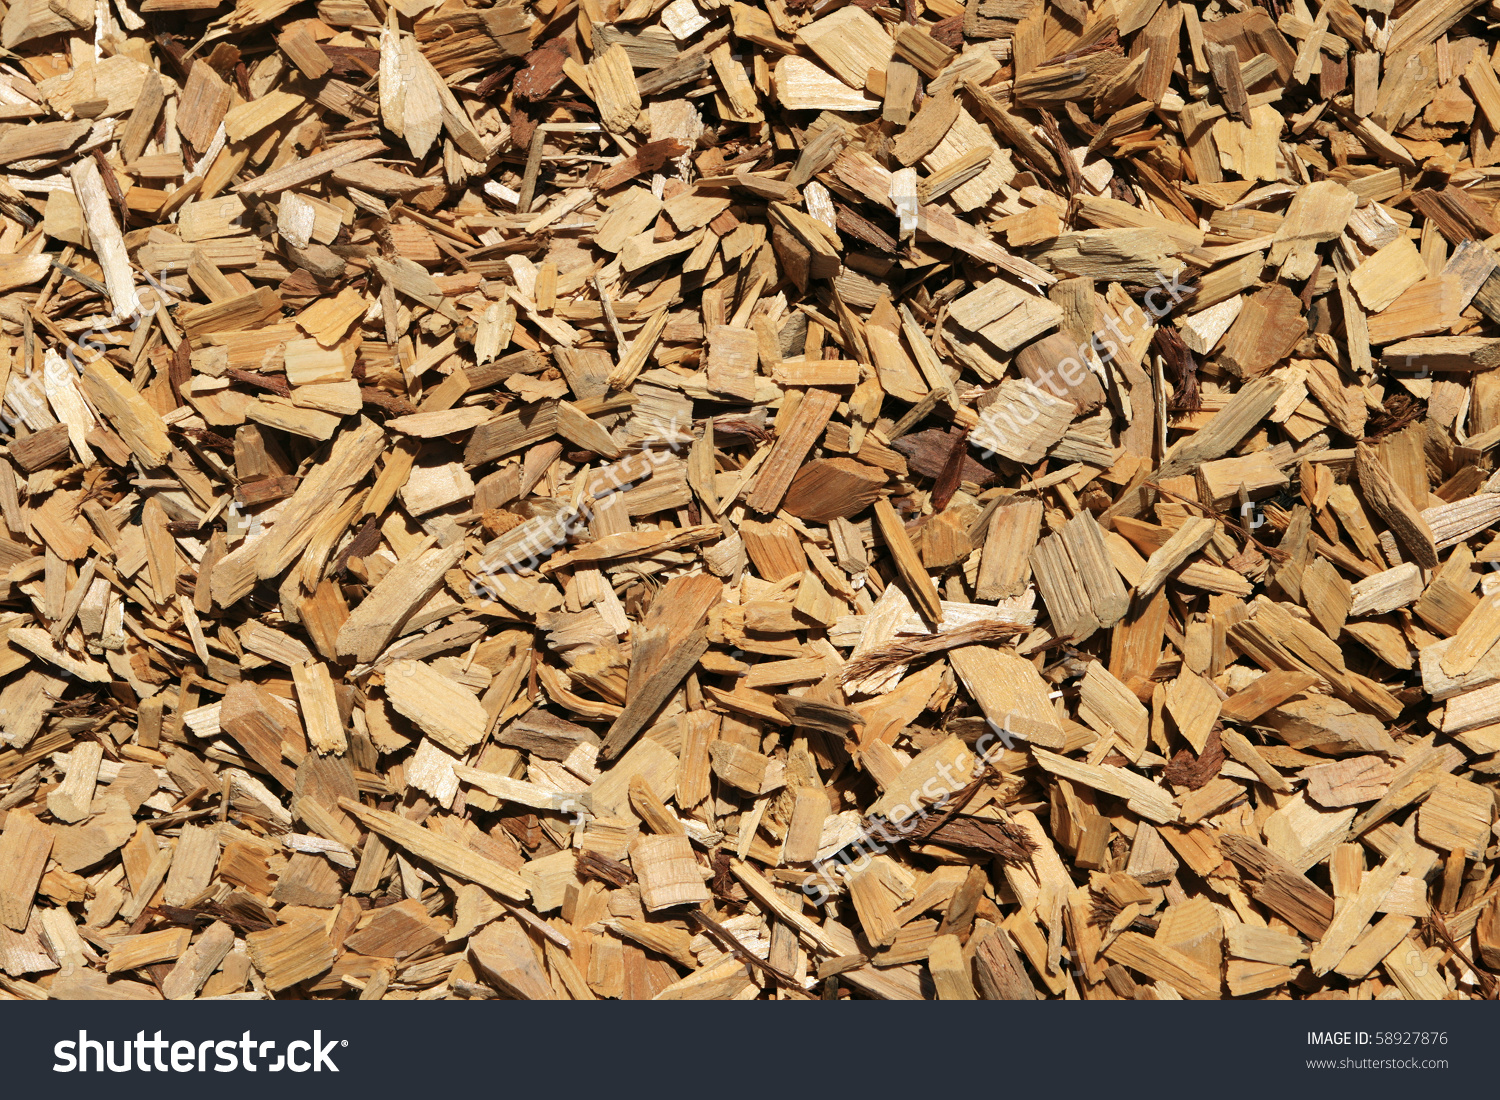 Brown And Tan Wood Chip Background Stock Photo 58927876 : Shutterstock.